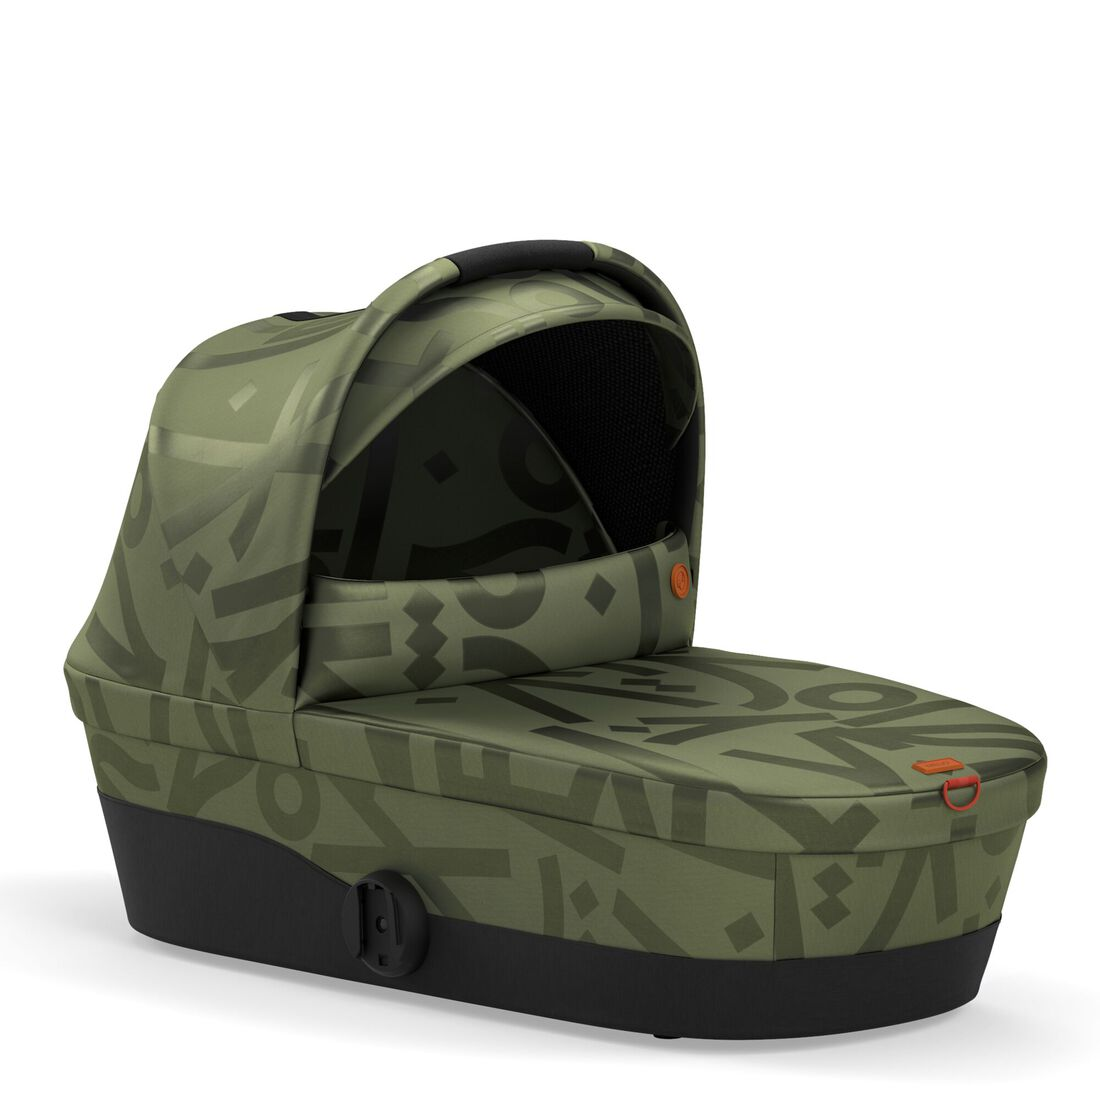 CYBEX Melio Cot - Olive Green in Olive Green large Bild 2